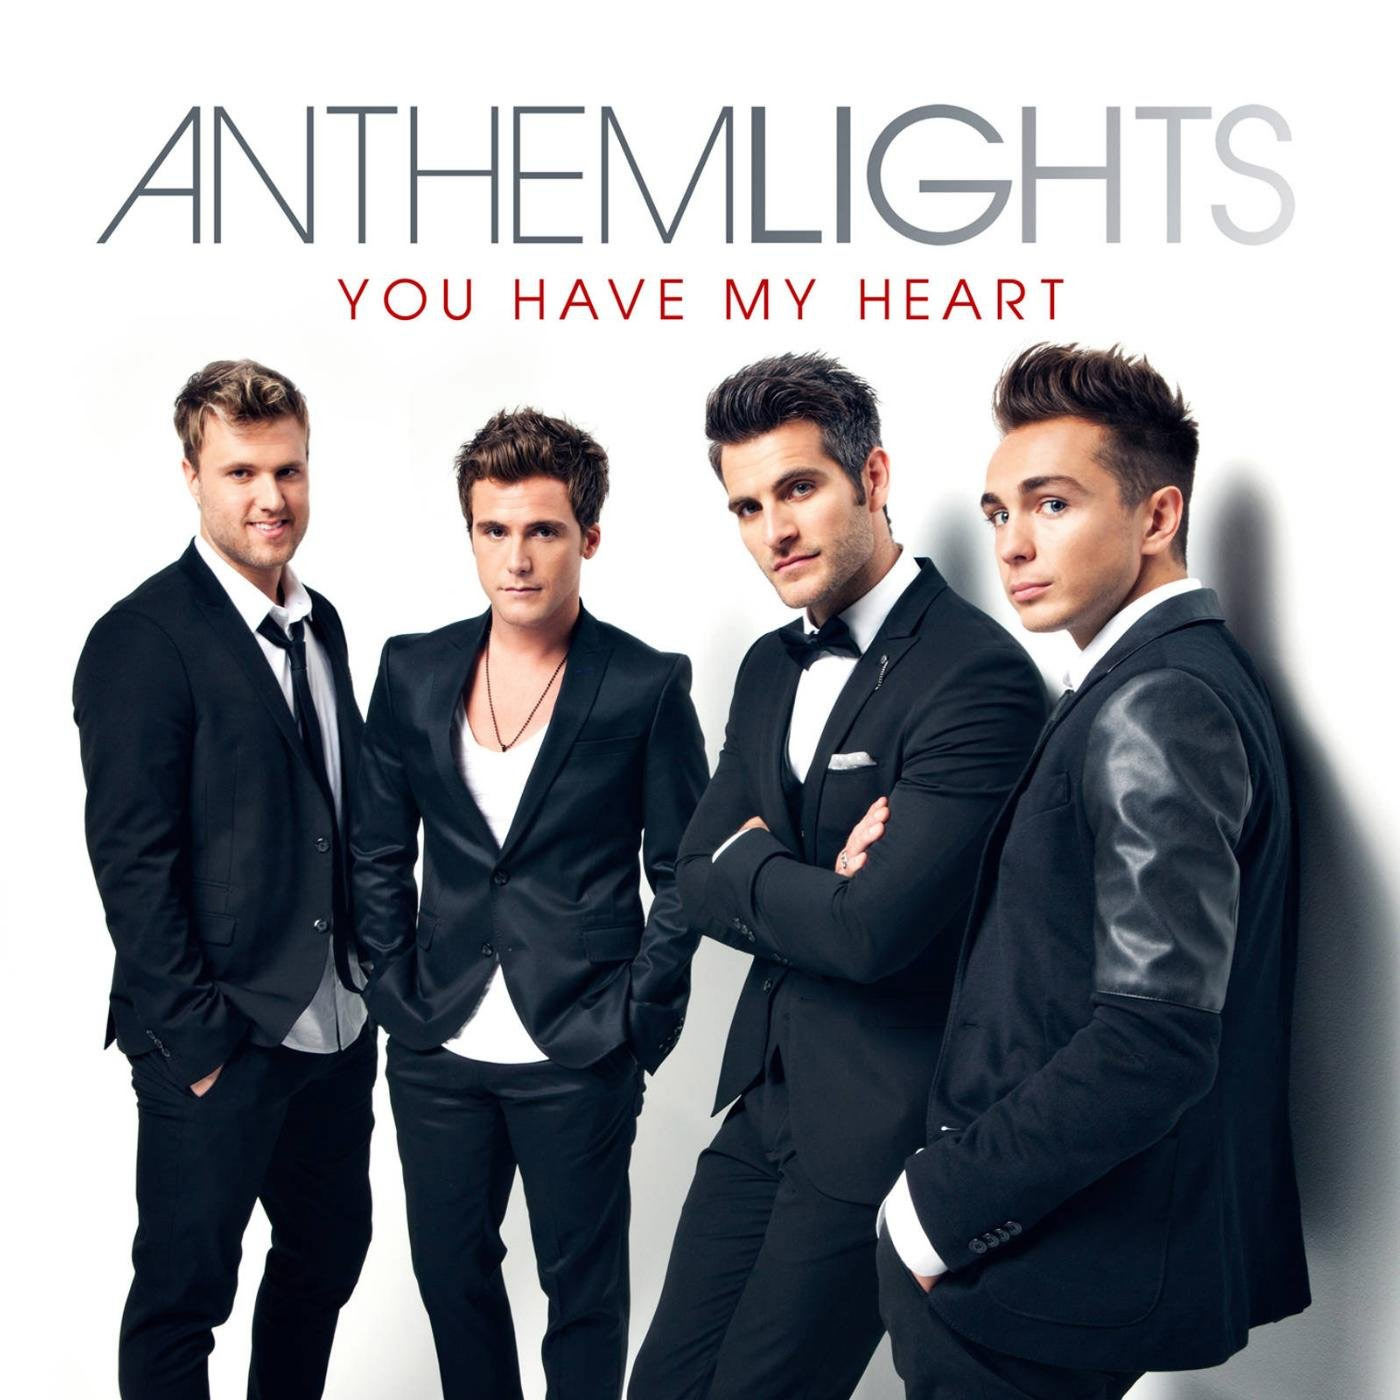 Anthem Lights, You Have My Heart Photo Gallery